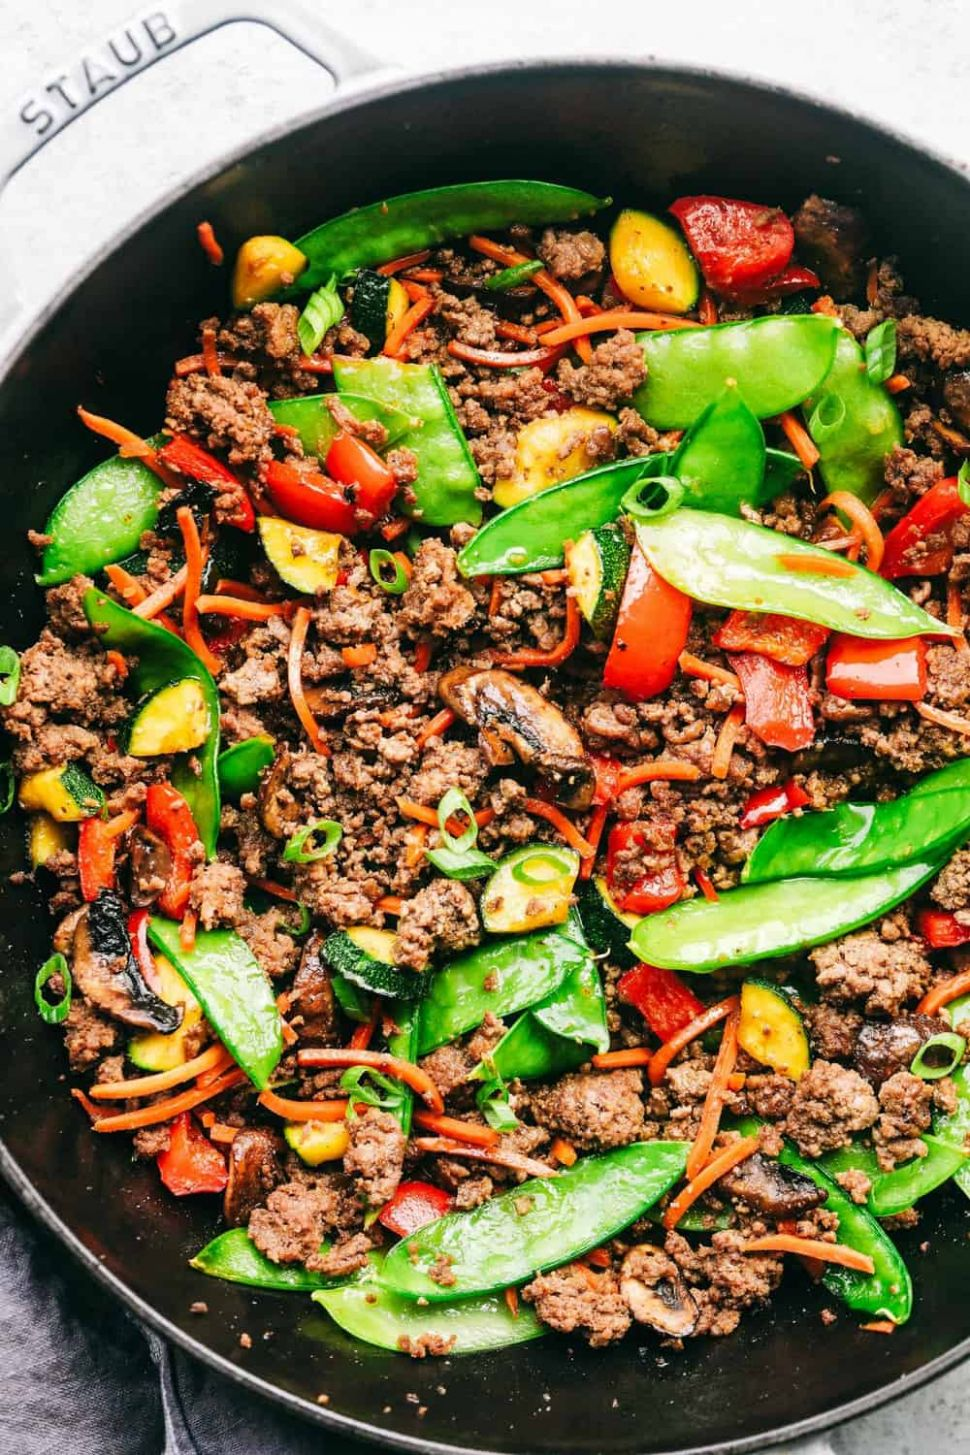 Korean Ground Beef Stir Fry | The Recipe Critic